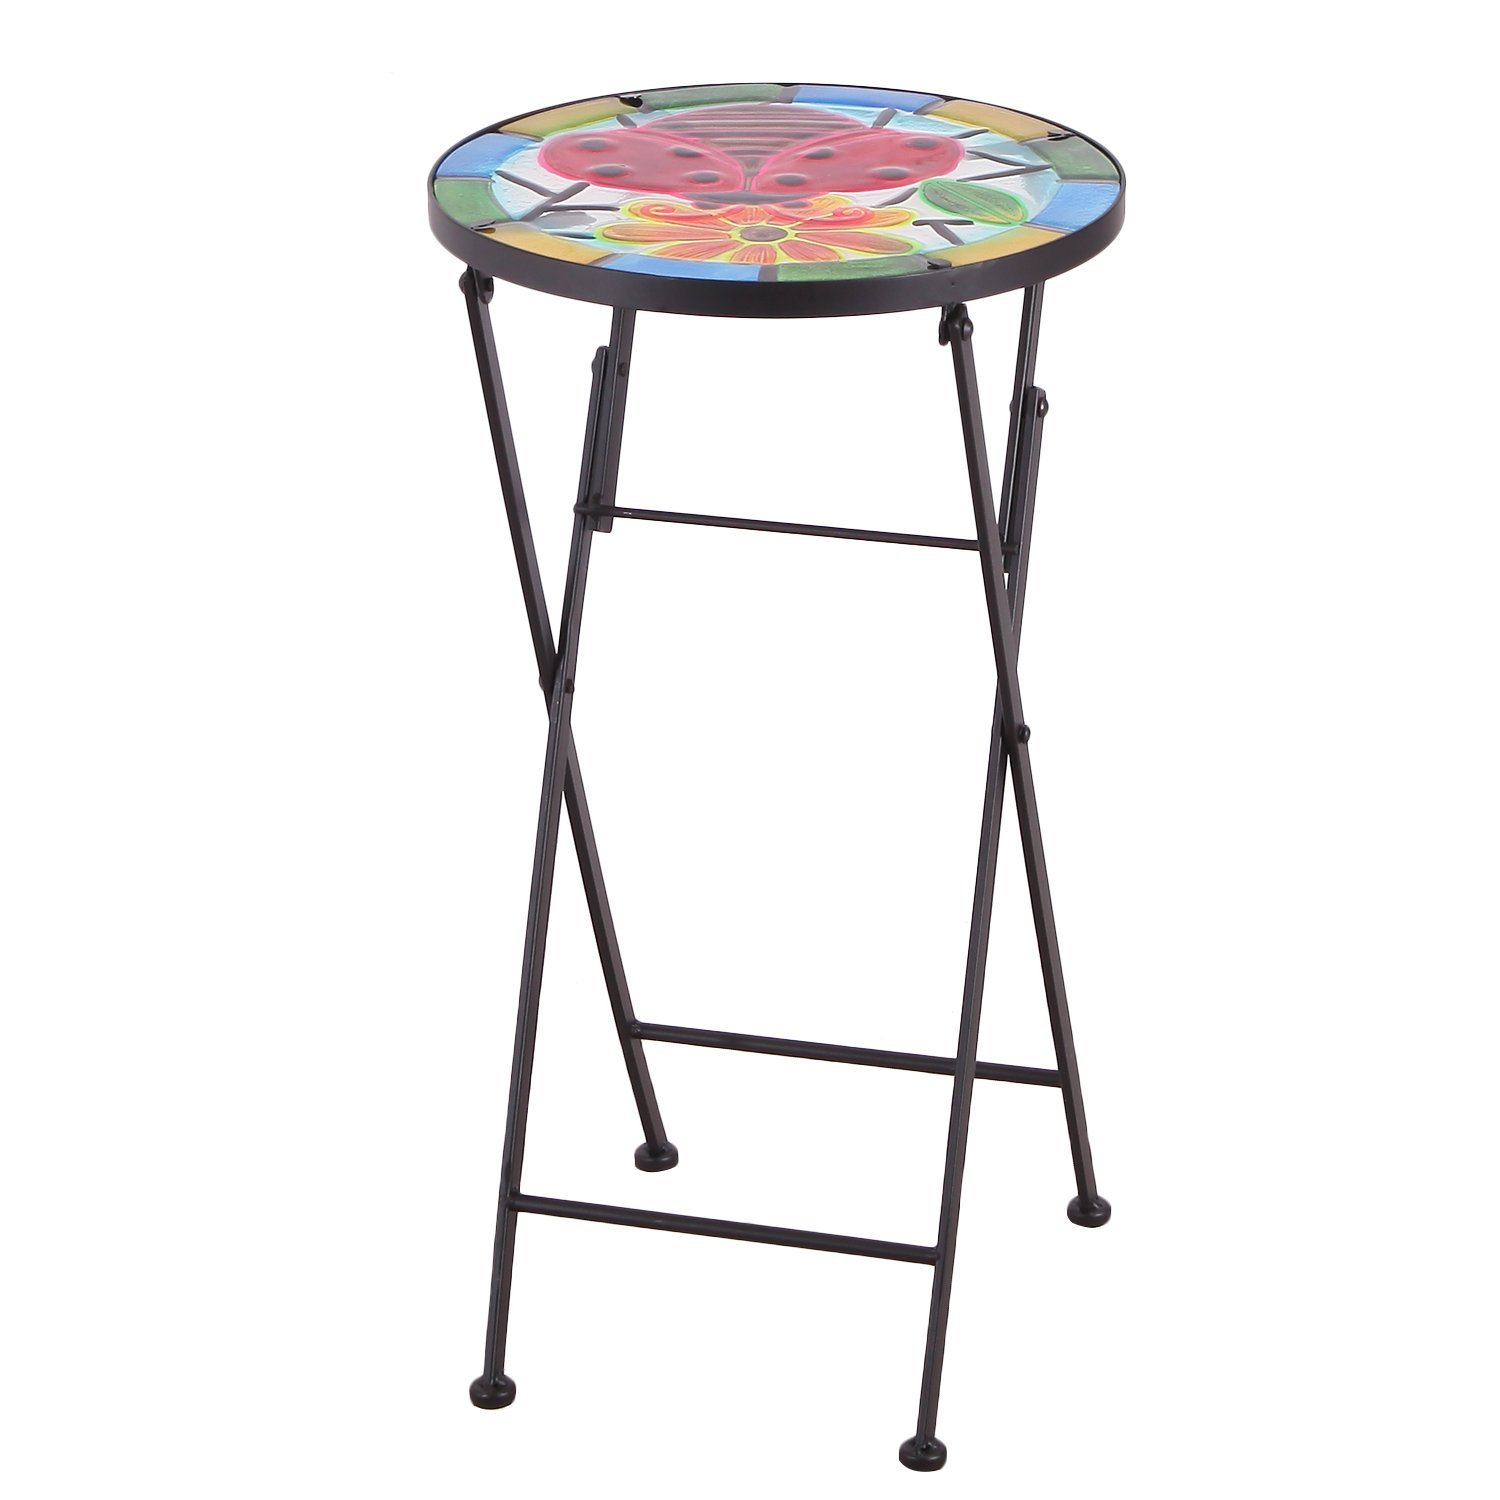 table top plant stand find bella green mosaic outdoor accent get quotations homebeez indoor foldable round side end folding for small vintage console extra wide floor threshold